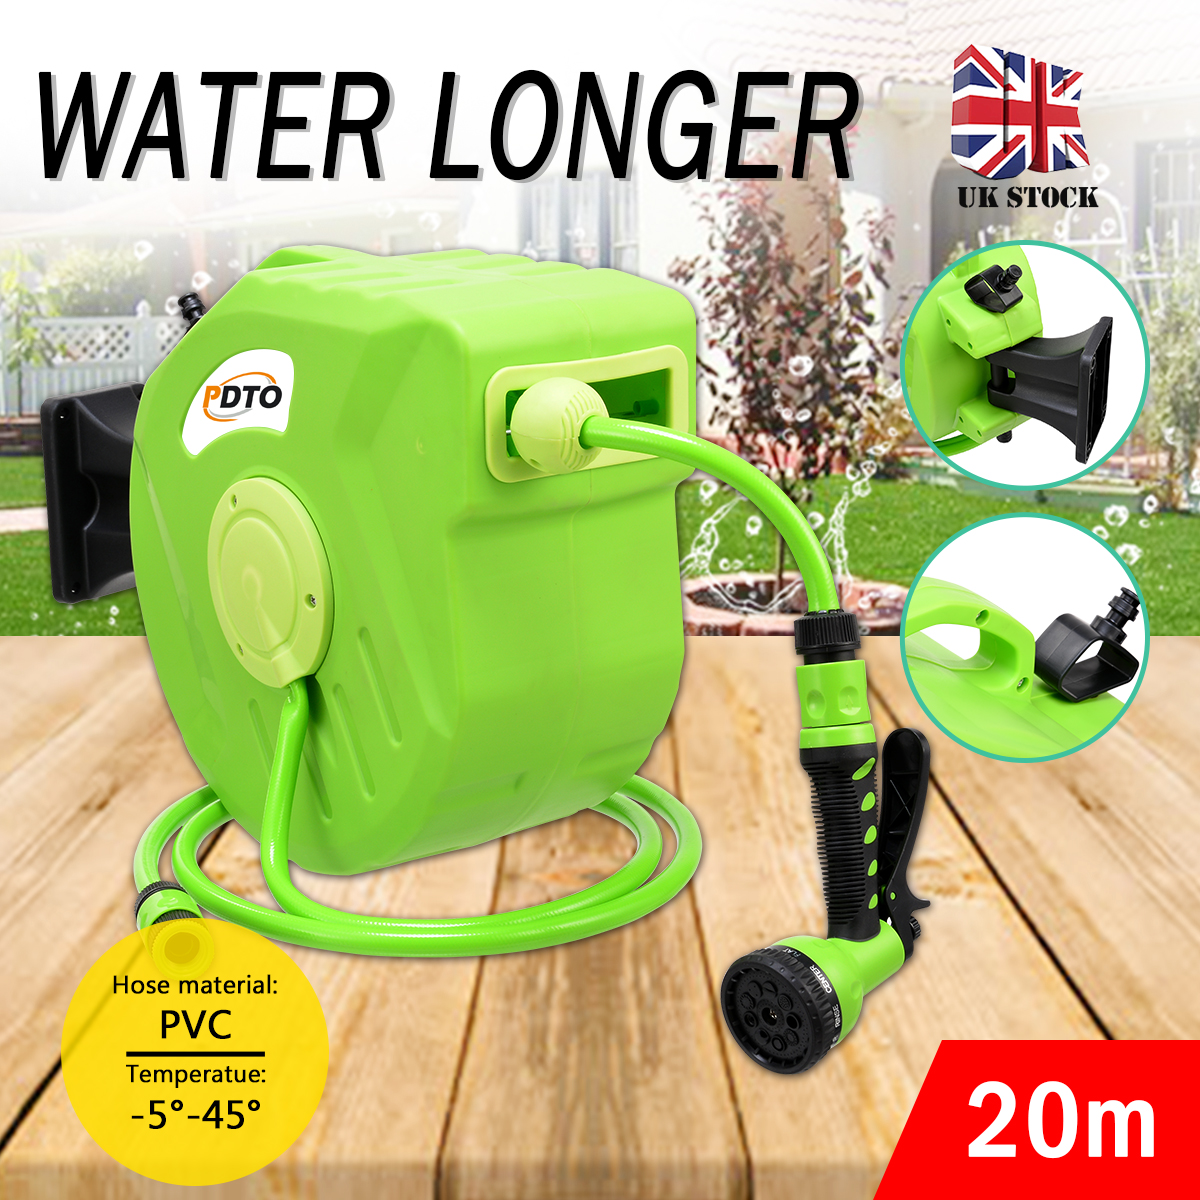 20M Automatic Rewind Garden Water Hose Reel Retractable Wall-Mounted Outdoor Spray Water Garden Watering Tool Car Washer Tools